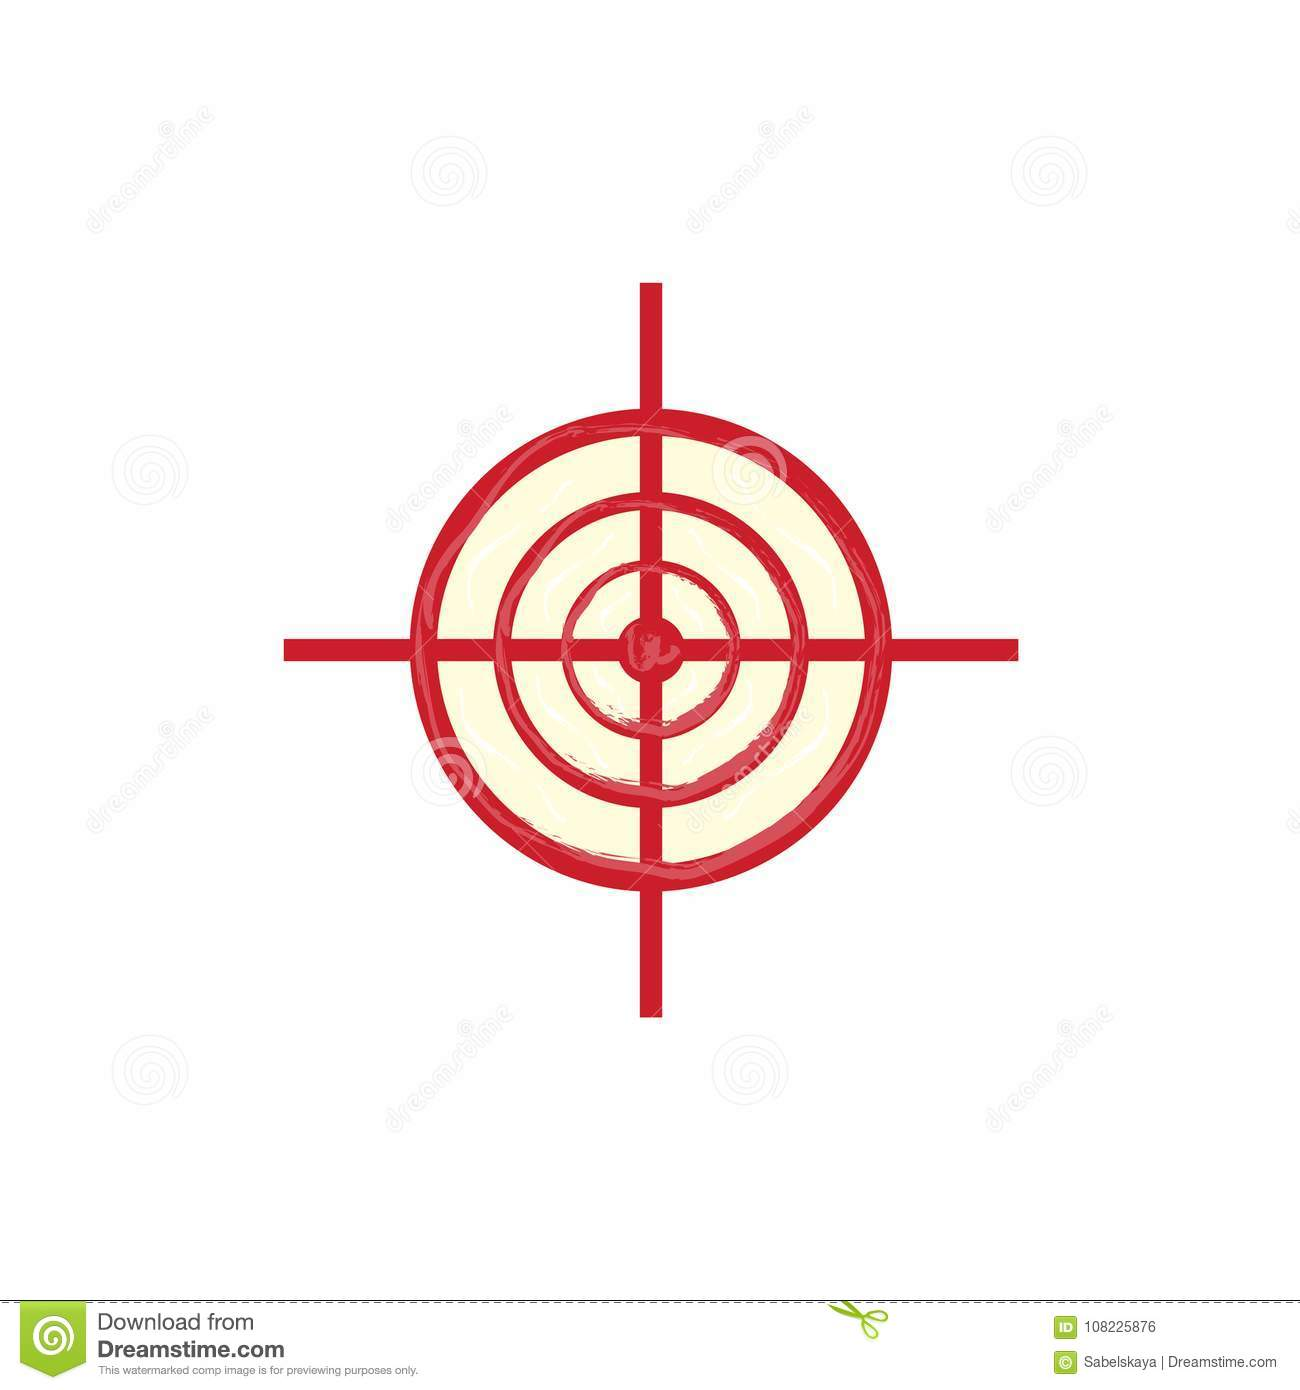 vector red sniper scope aim target icon stock vector illustration of icon bulls 108225876 https www dreamstime com vector red sniper scope aim target icon flat army military february russian defender fatherland day symbol crosshair image108225876